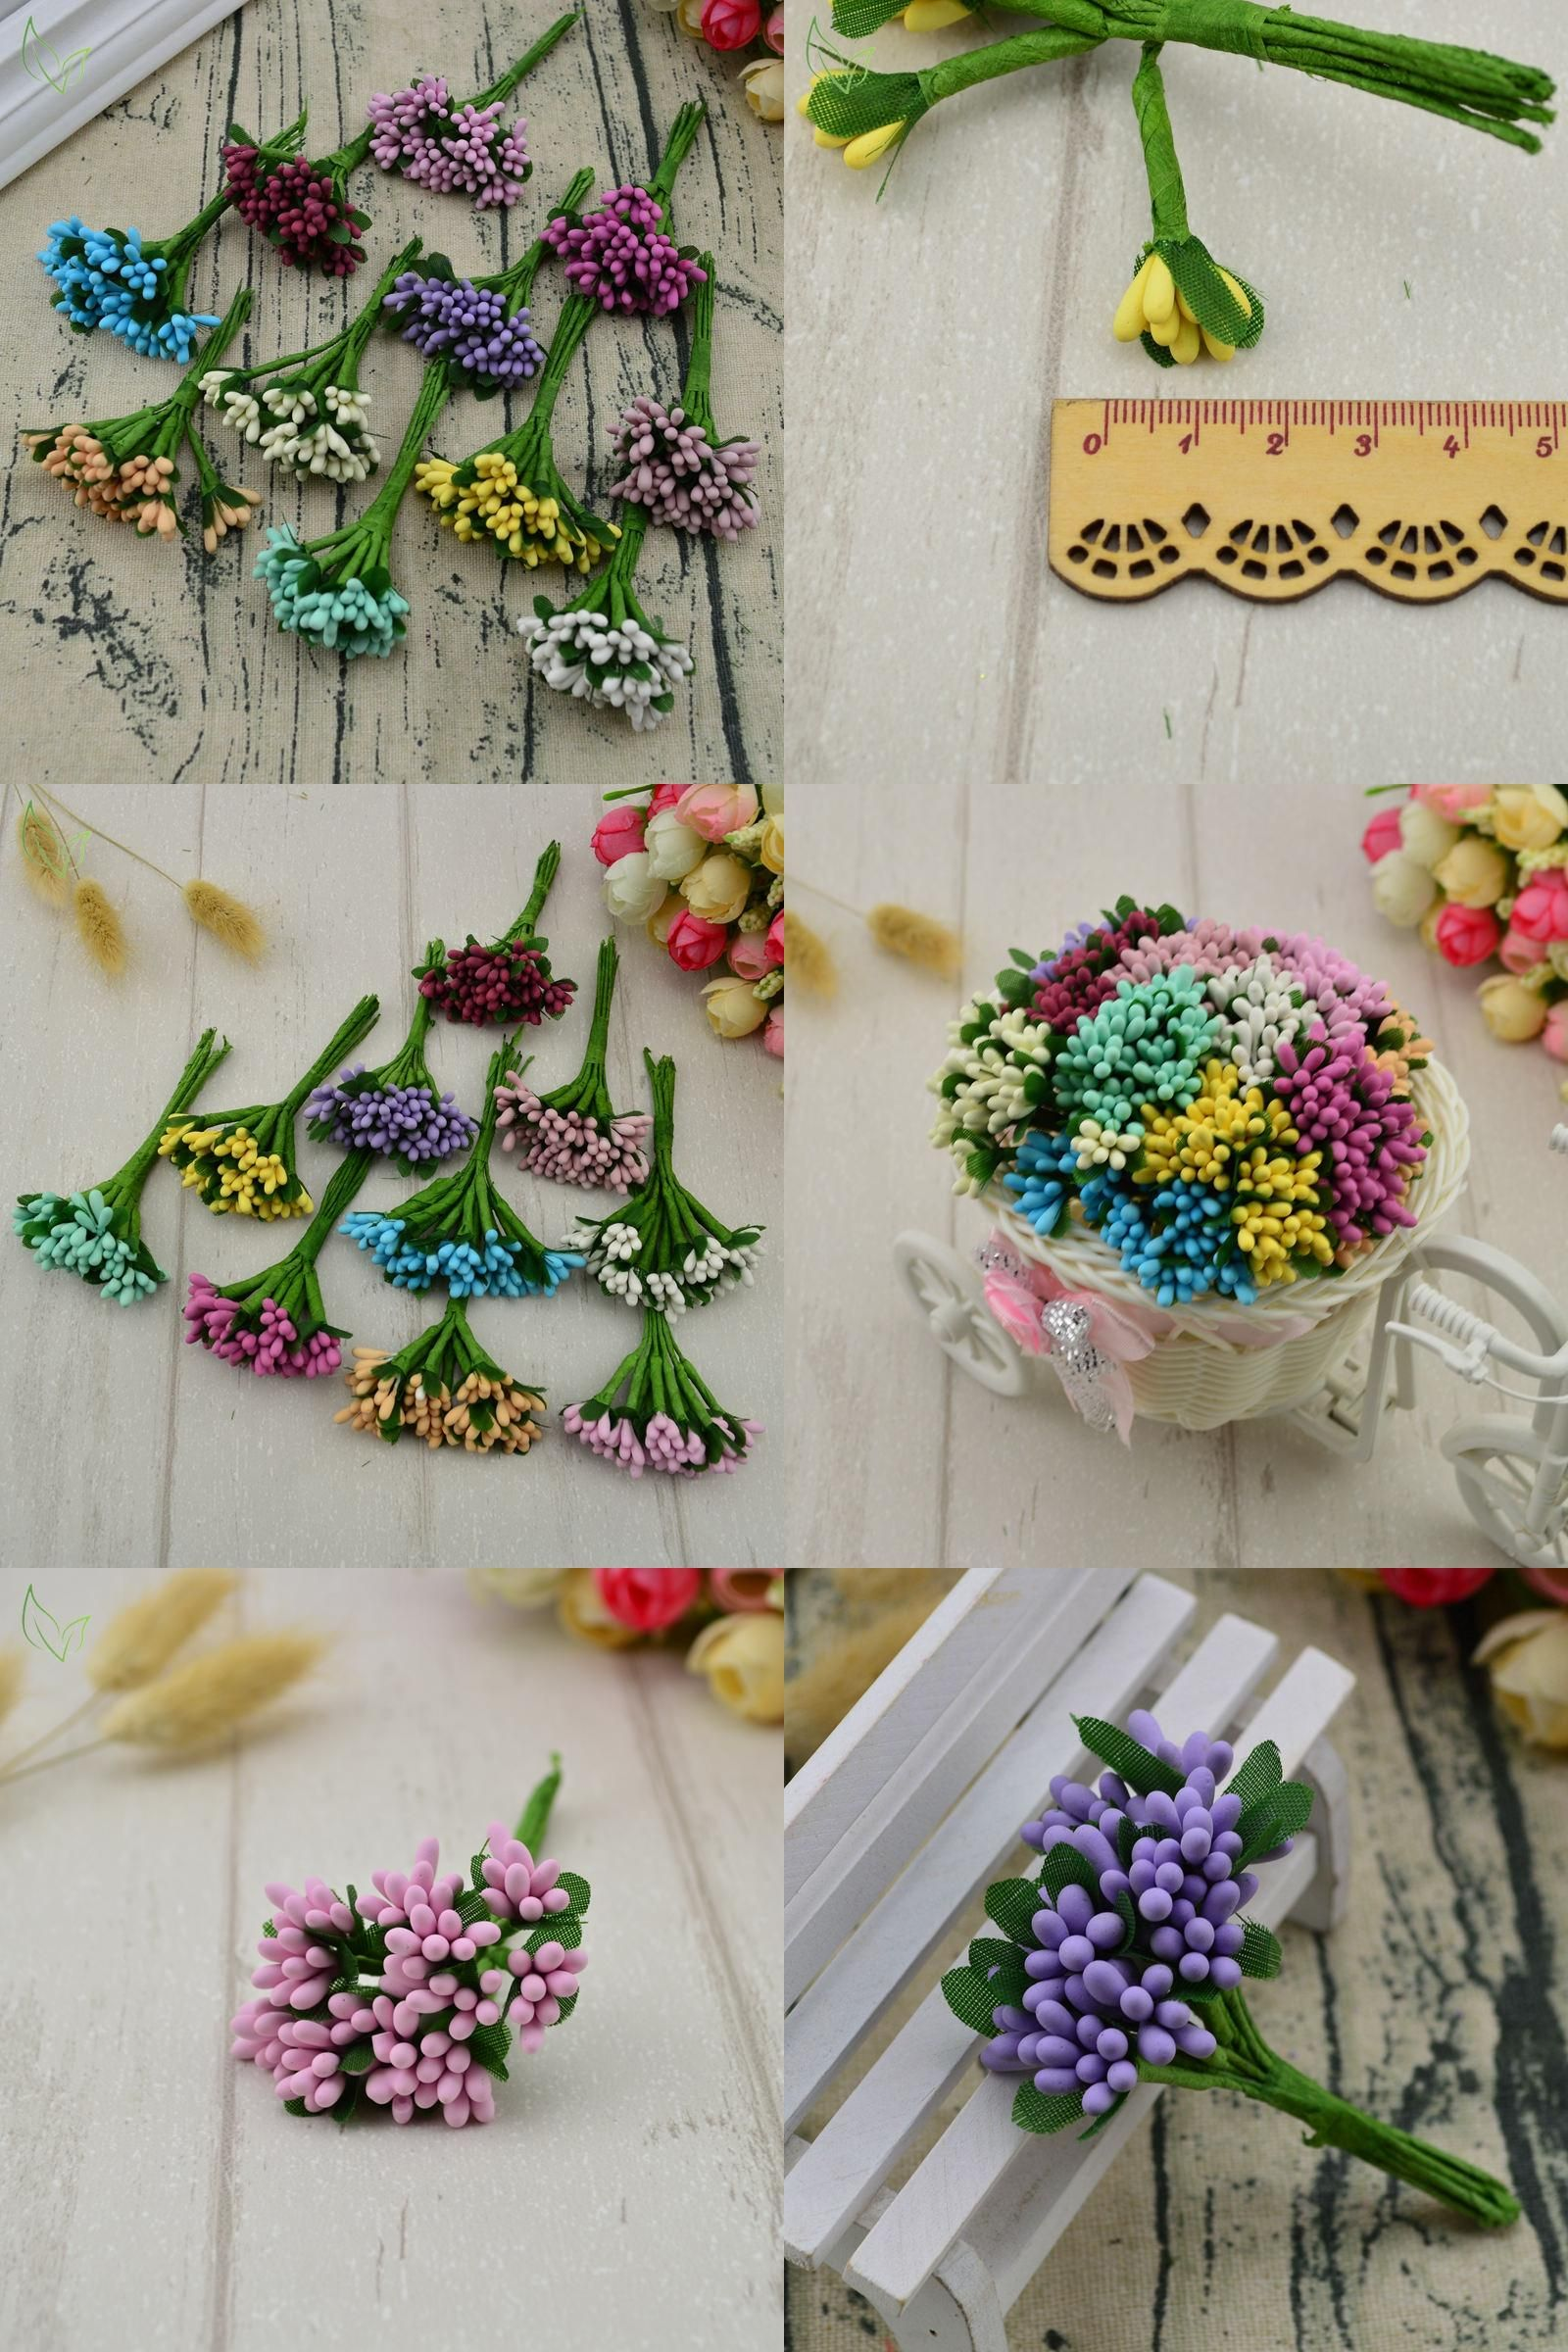 Visit To Buy 12 Pcs Stamen Sugar Handmade Artificial Flowers Cheap